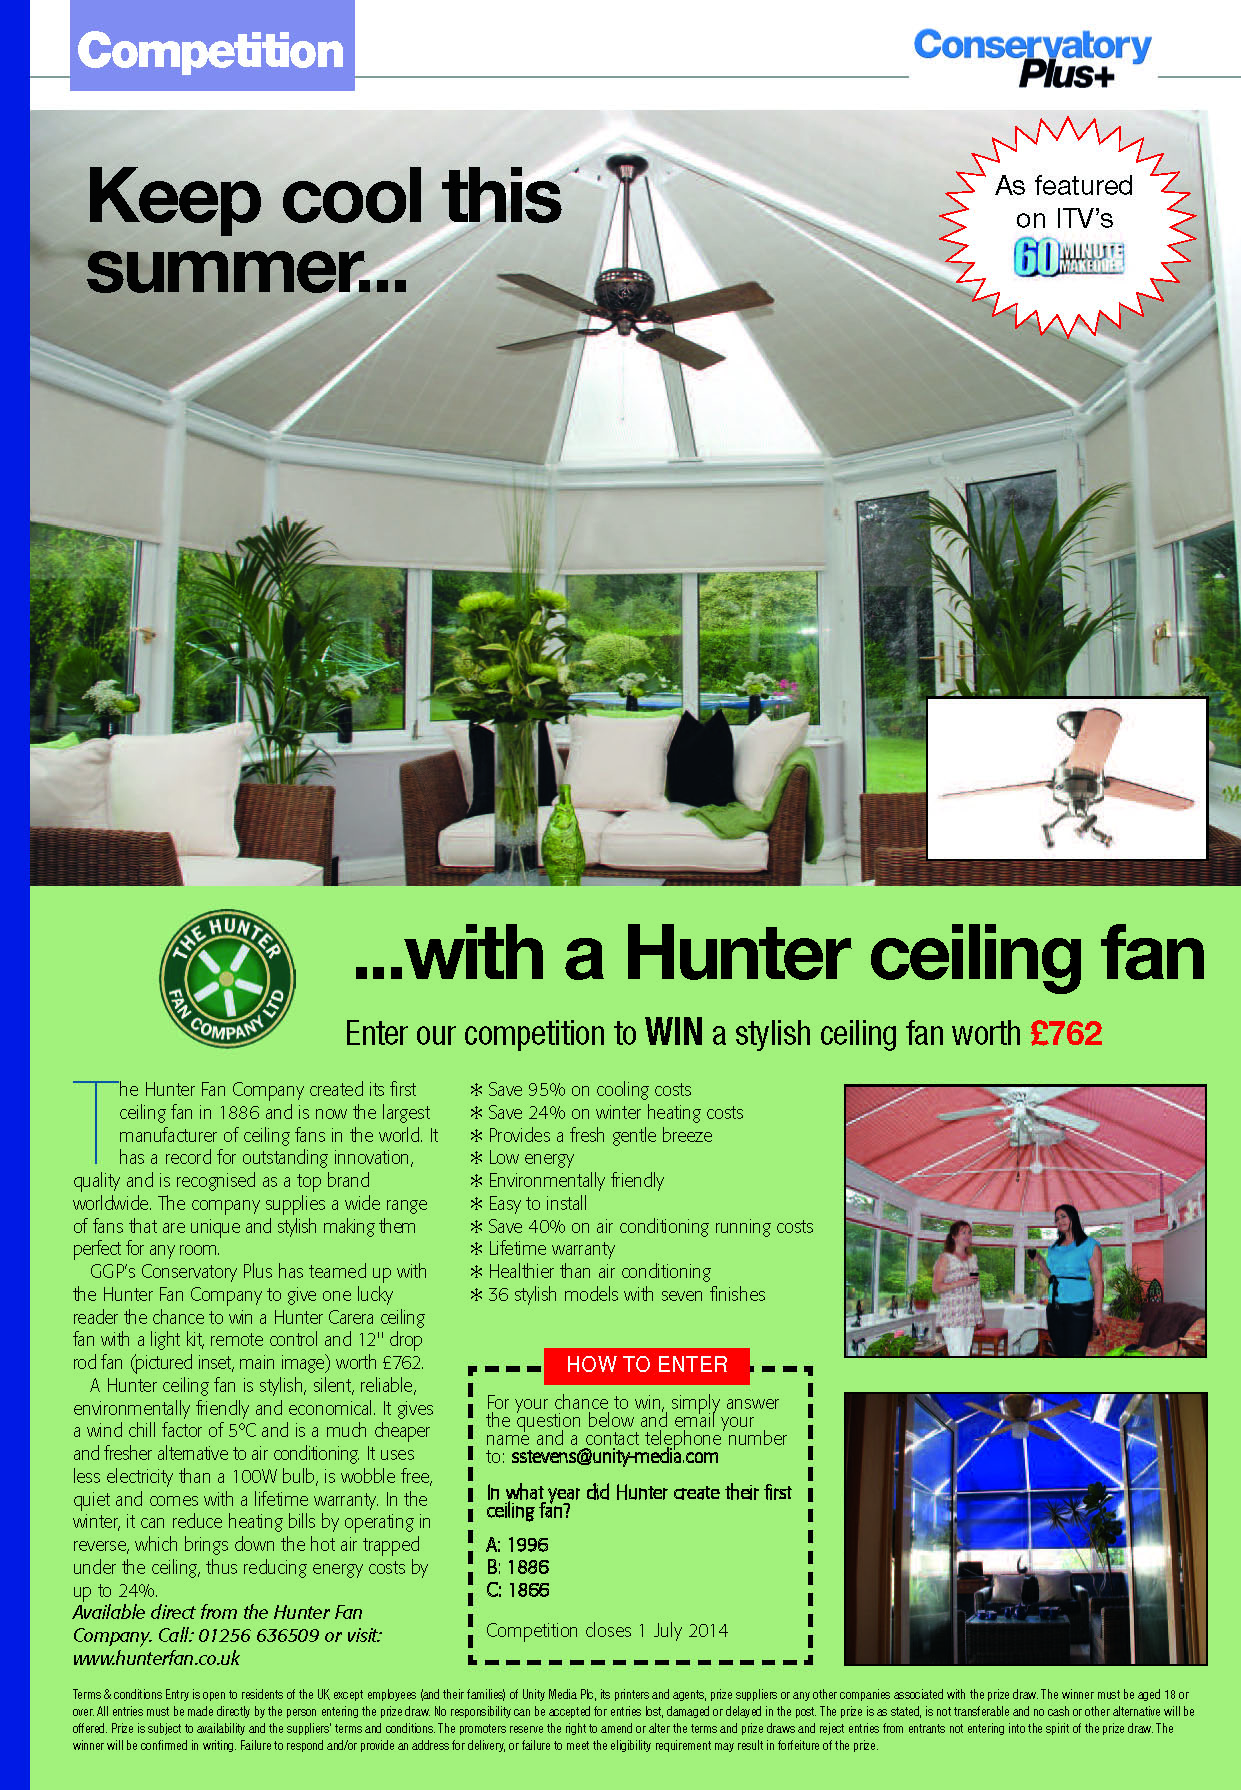 Conservatory Magazine Competition – Hurry to enter!